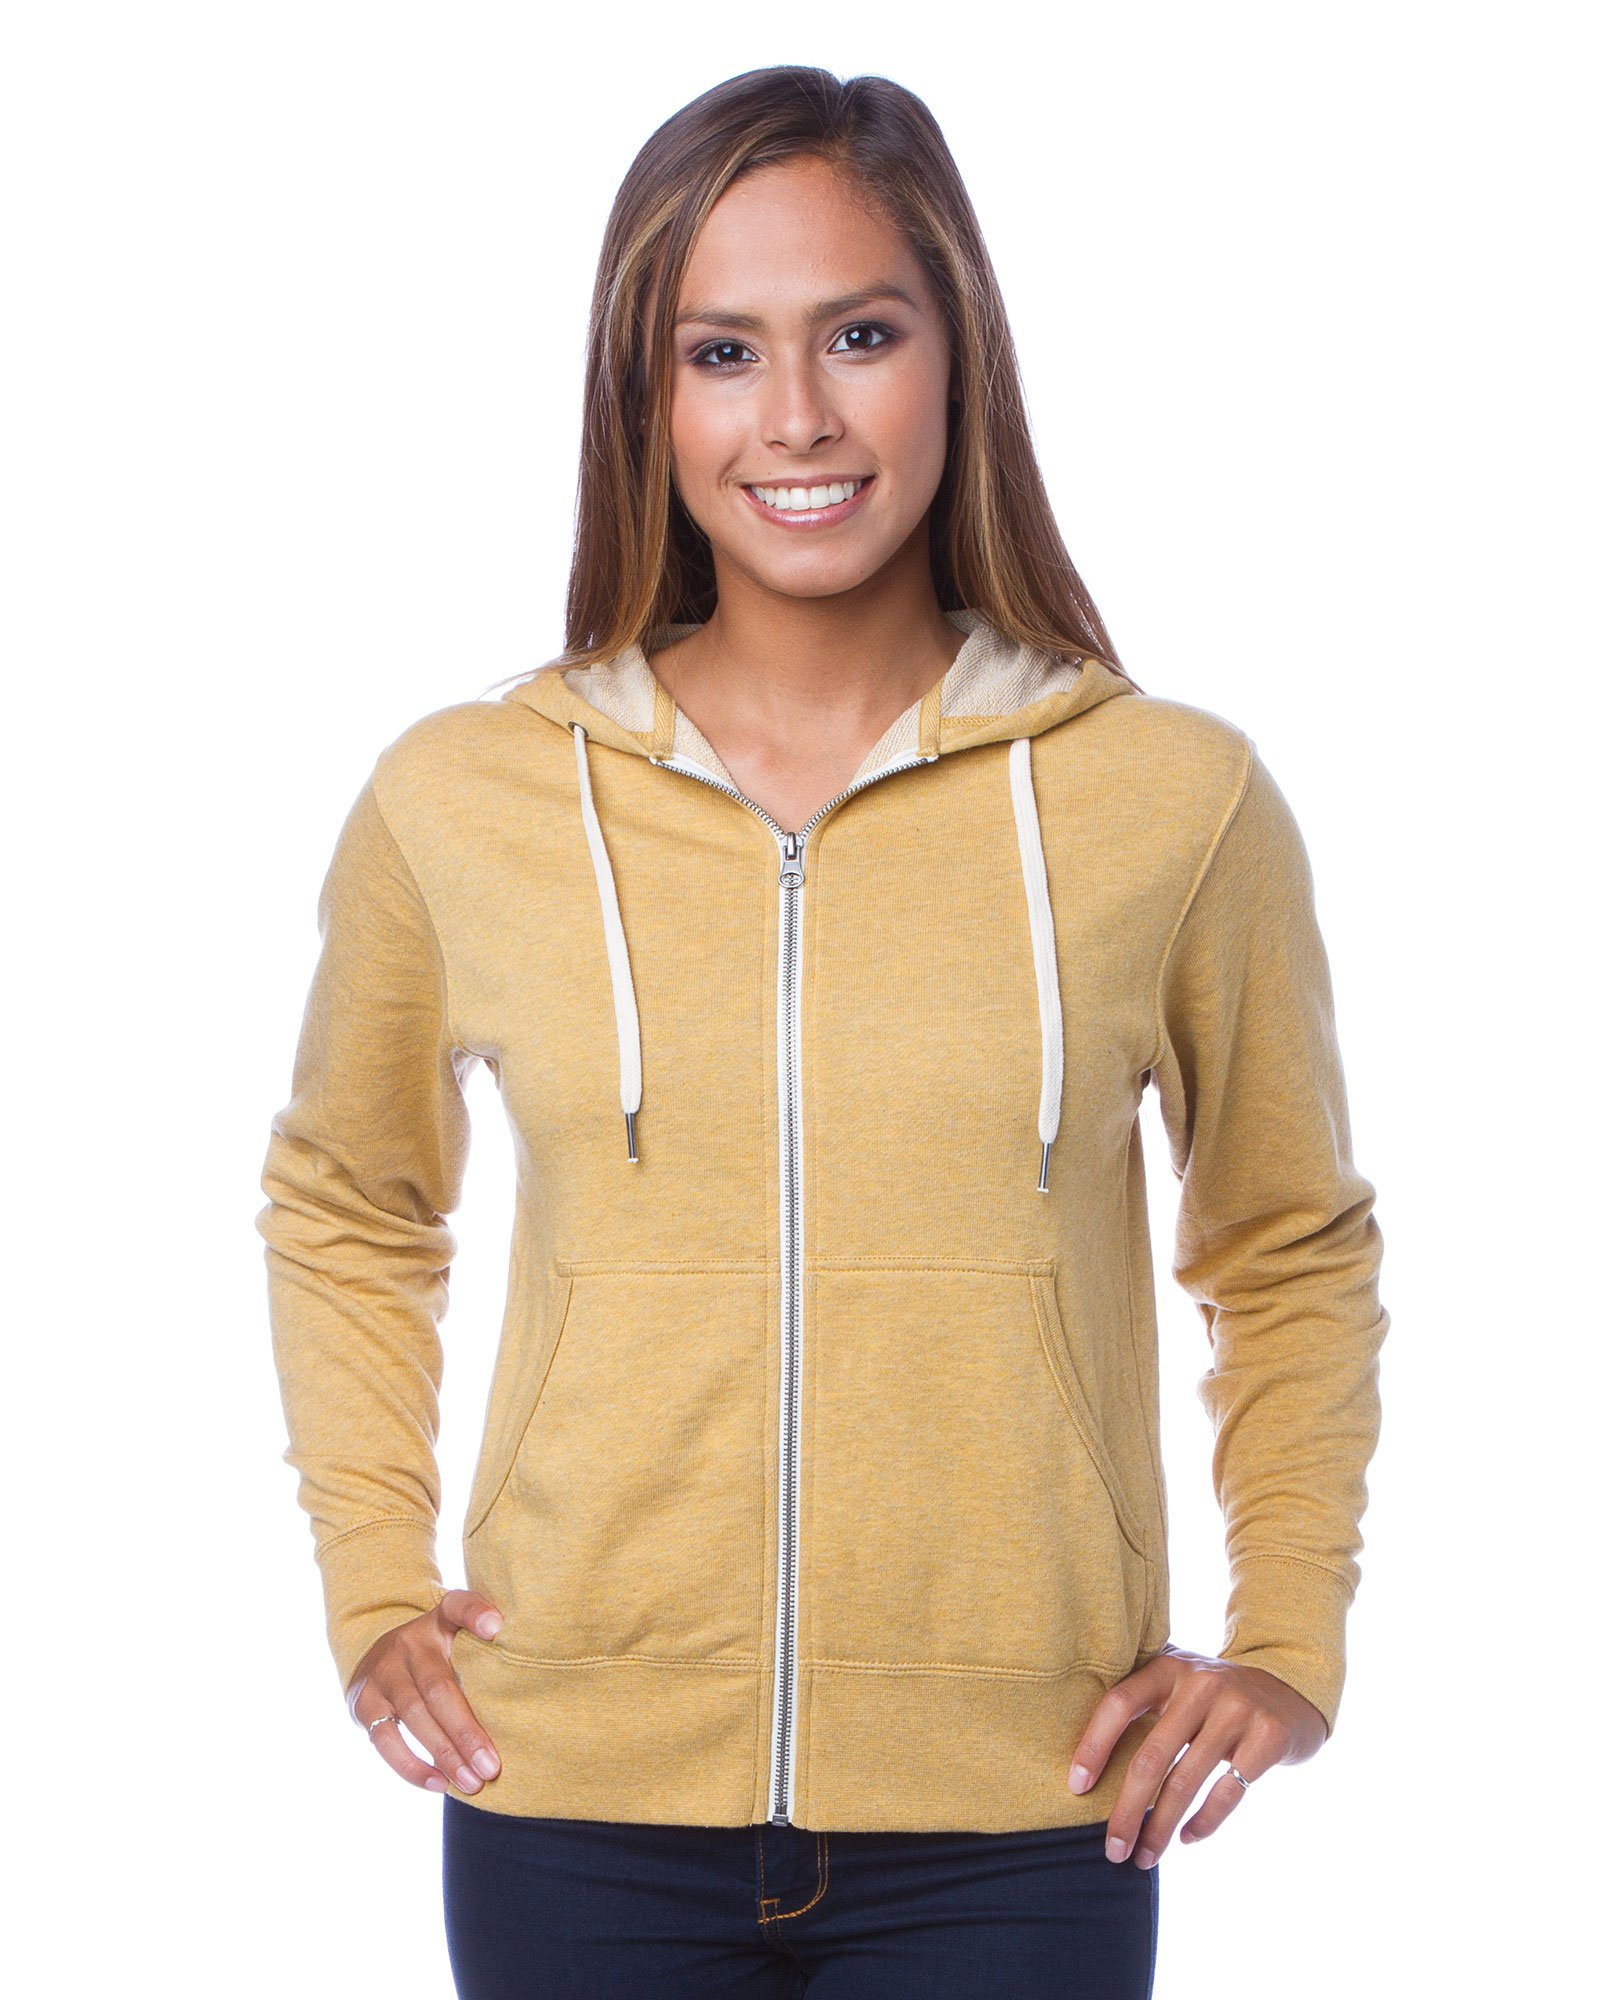 Global Blank Slim Fit French Terry Lightweight Zip up Hoodie for Men and Women XL Gold Yellow